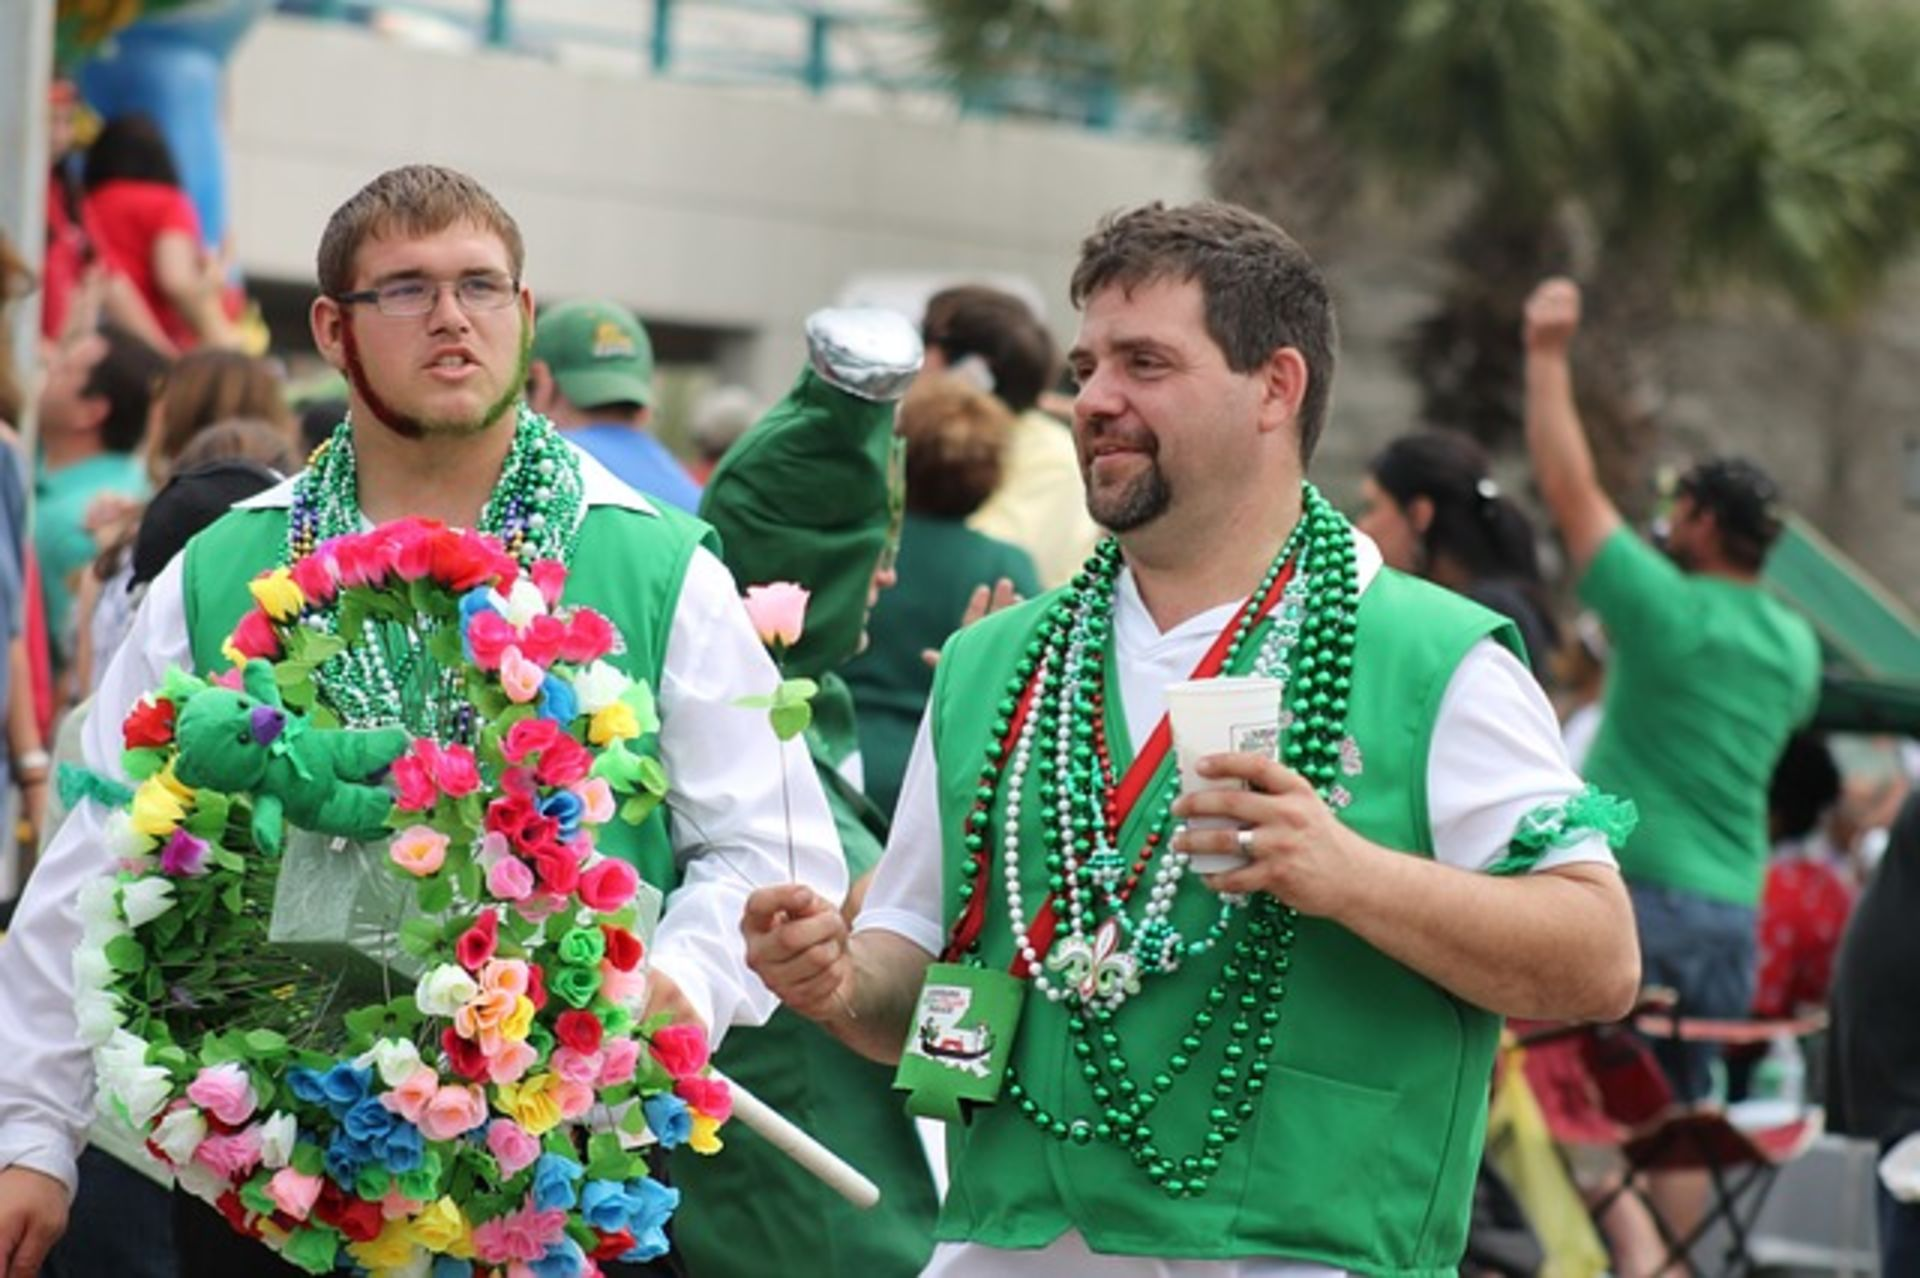 Mark Your Calendars: The 33rd Wearin' of the Green Parade in Baton Rouge